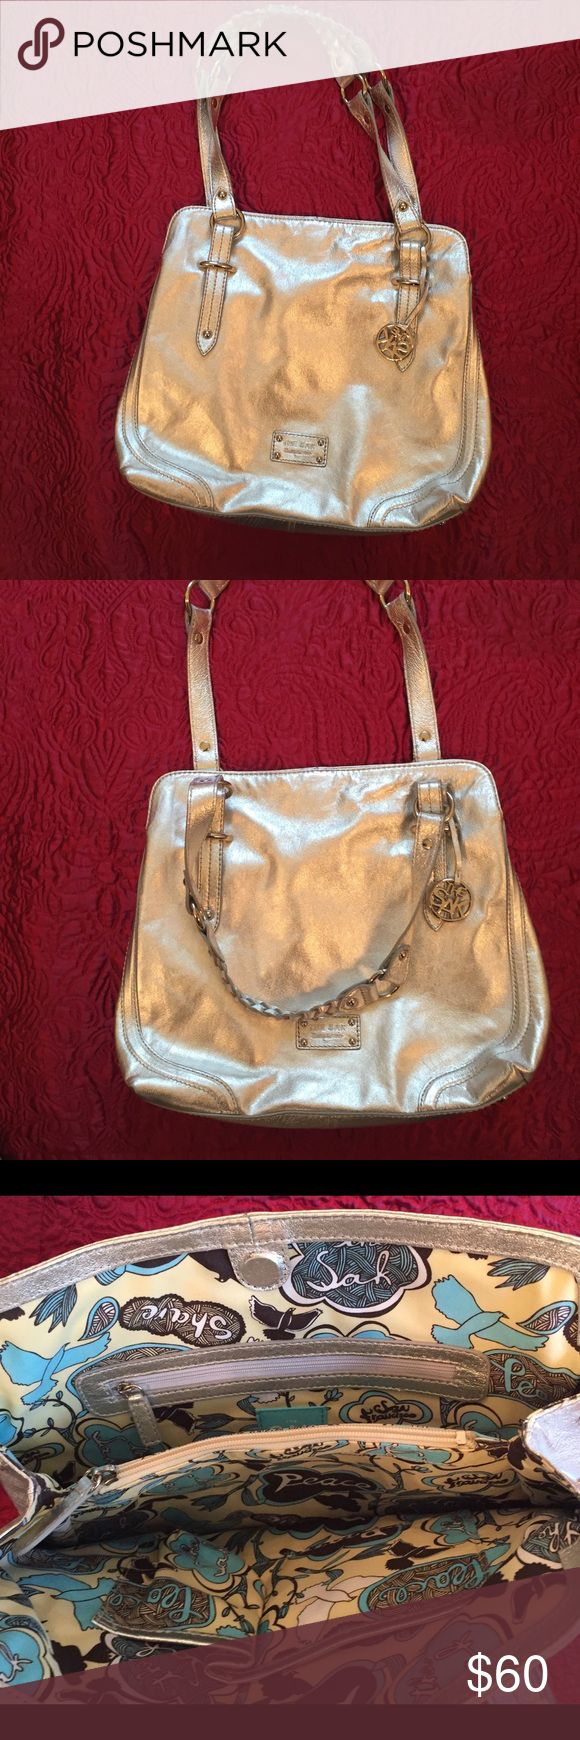 Silver Handbag Silver Handbag By The Sak NWOT Leather w/ Polyester Interior. Front wall 2 side pockets. Middle zipped compartment. Back wall zipper pocket. Main snap magnet closure. Silver toned hardware. The Sak Bags Shoulder Bags